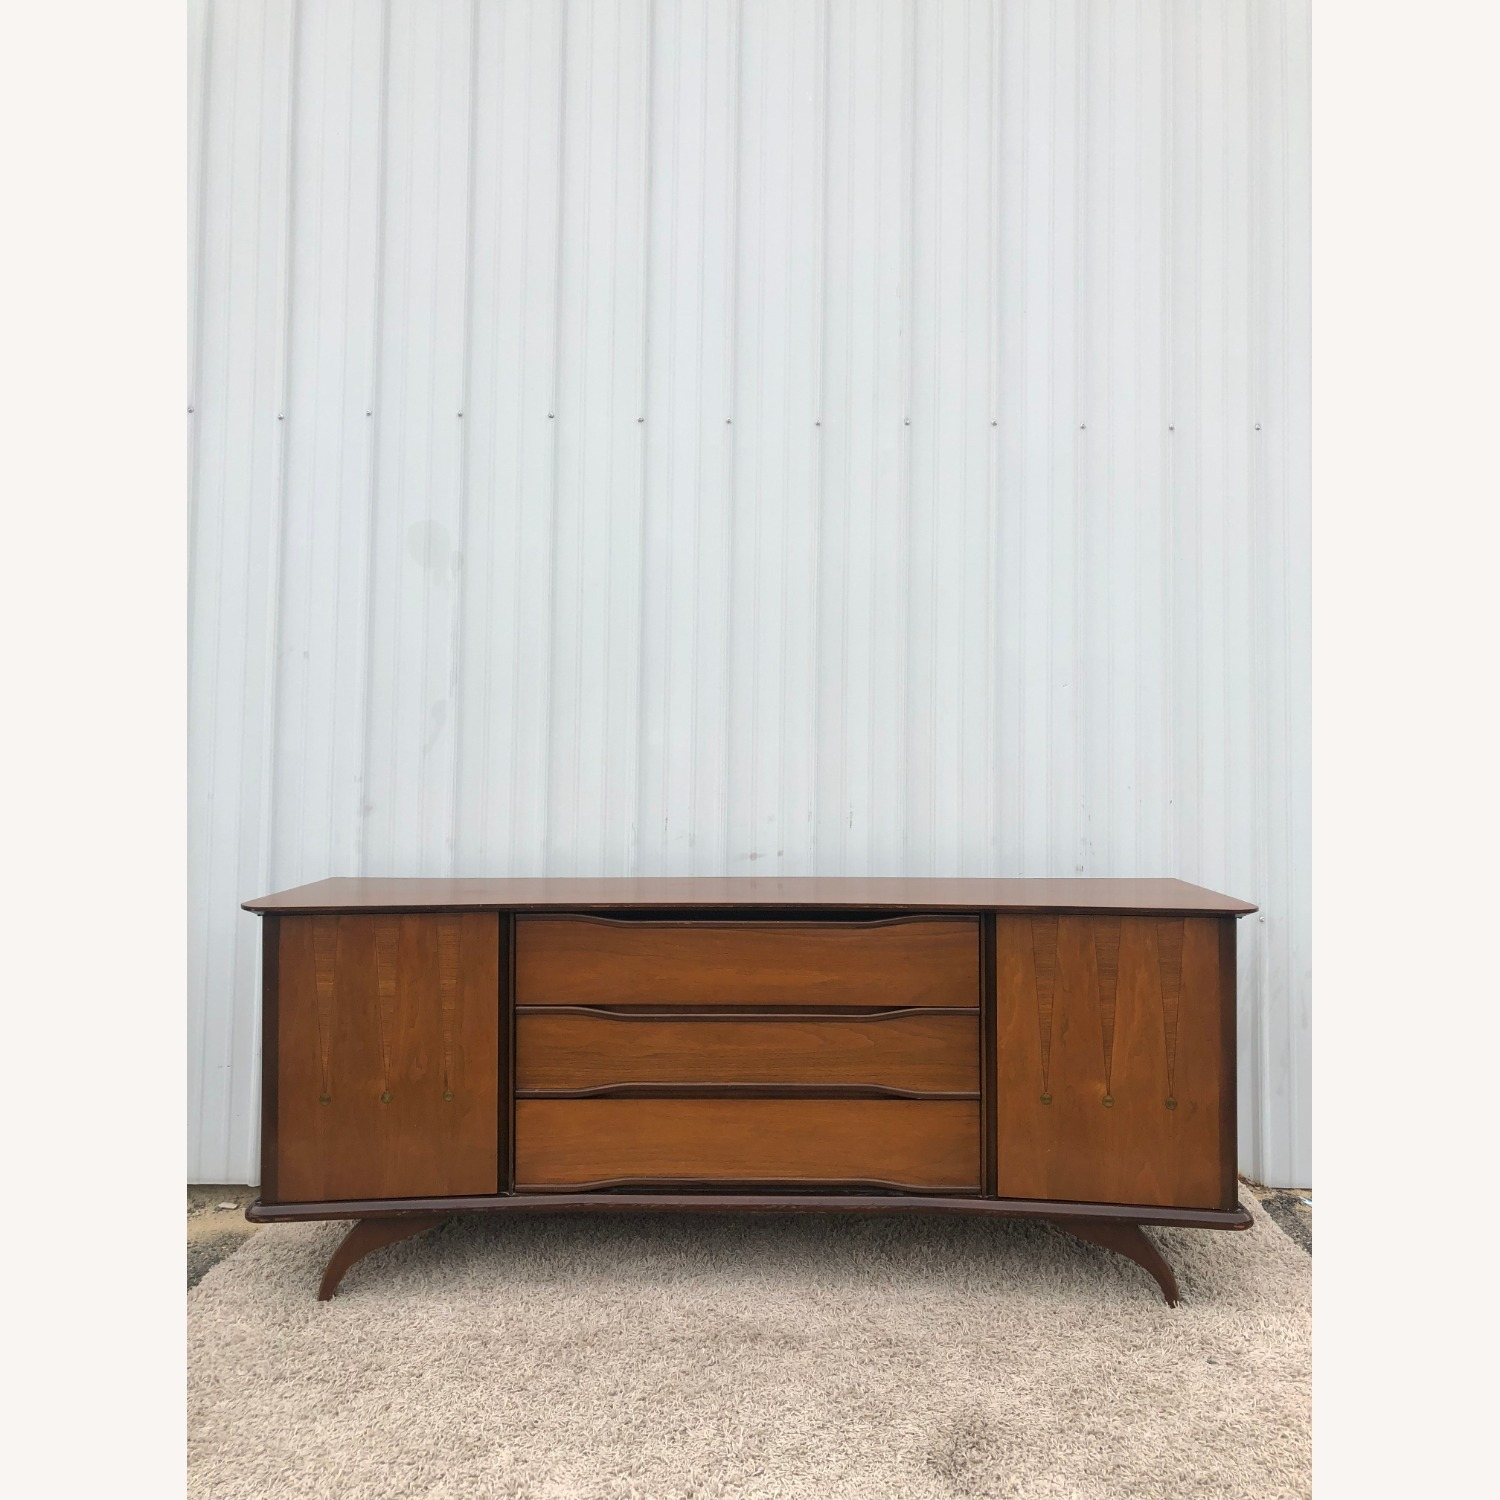 Mid Century Lowboy Dresser with Brasss Accents - image-16